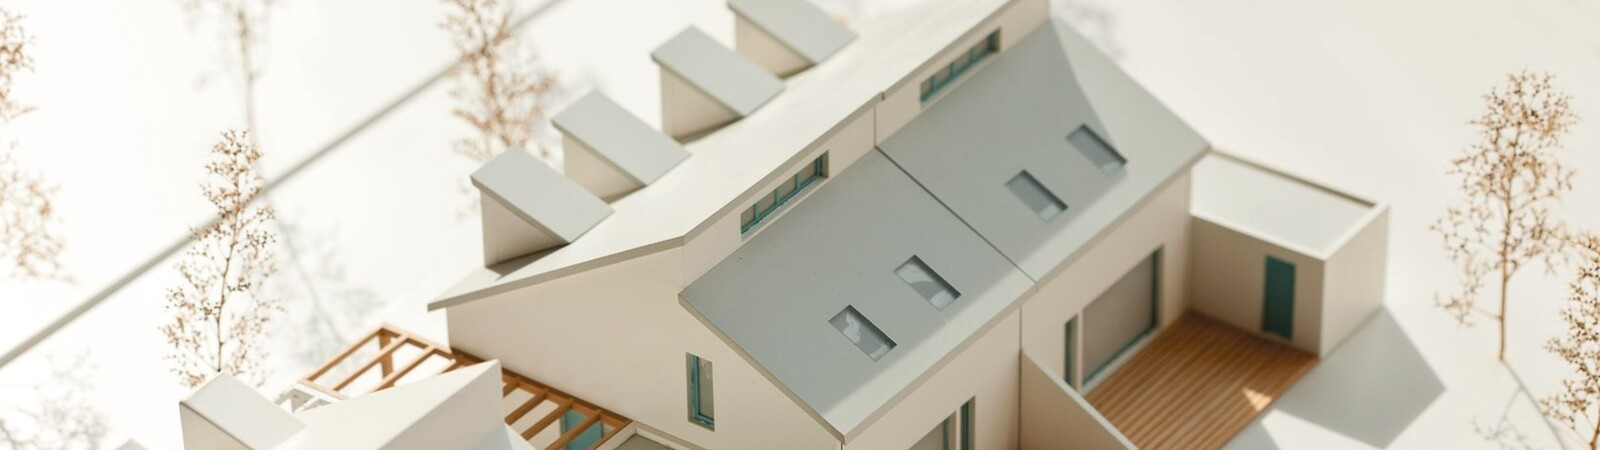 Architectual model of a house